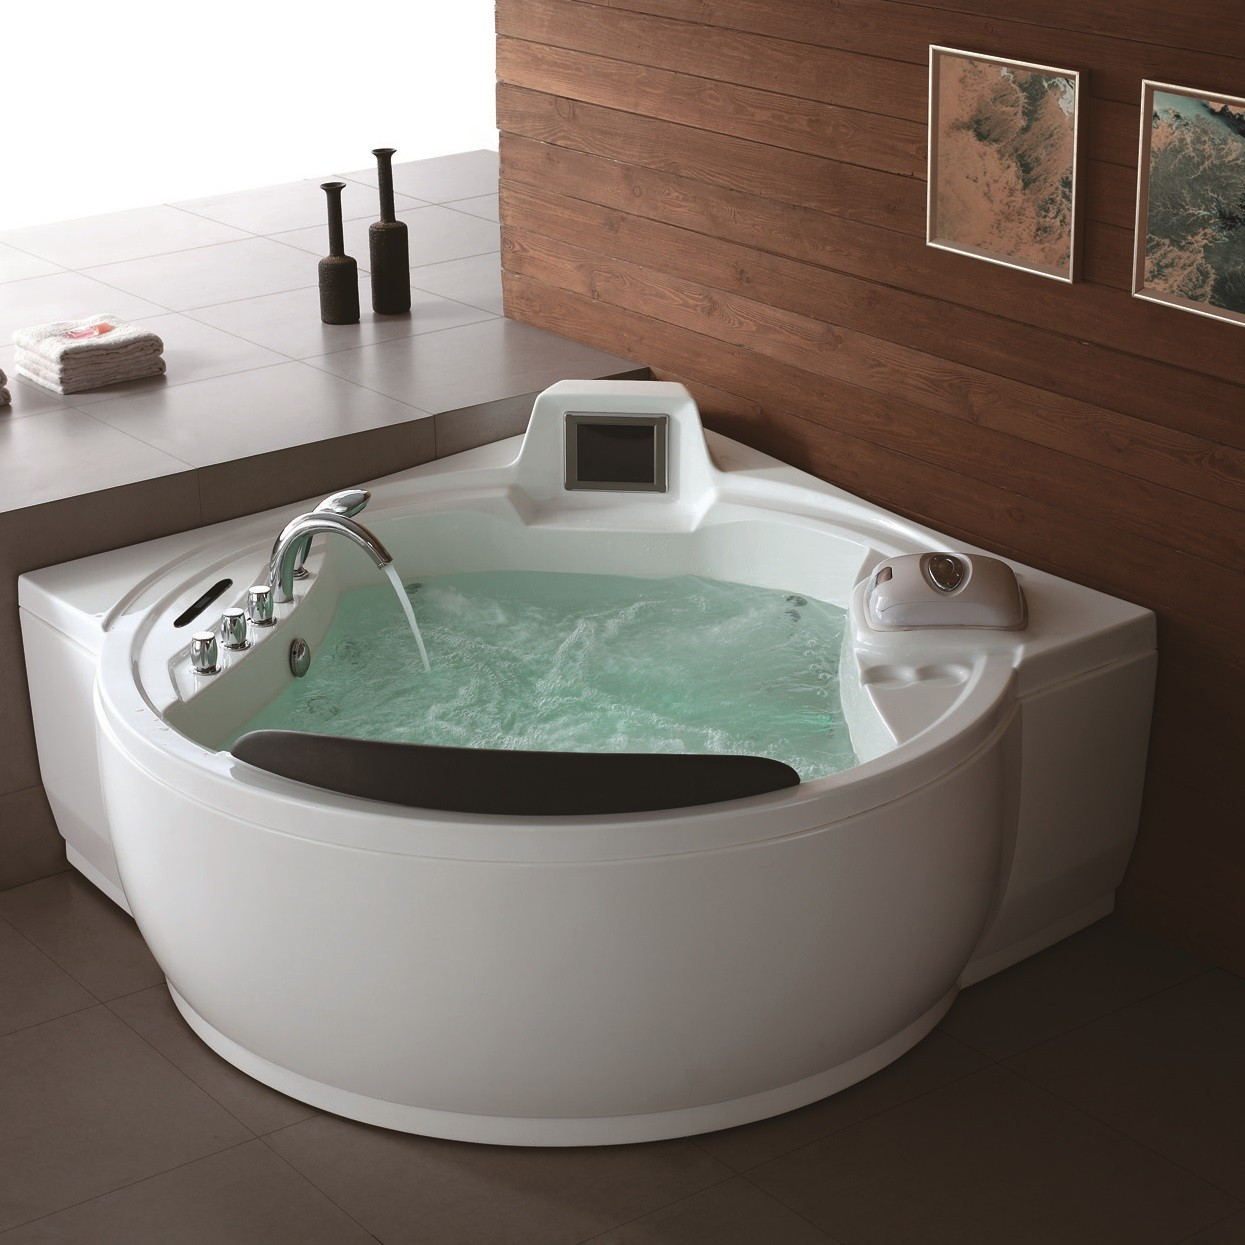 Freeport Luxury Whirlpool Tub. Freeport Whirlpool Tub